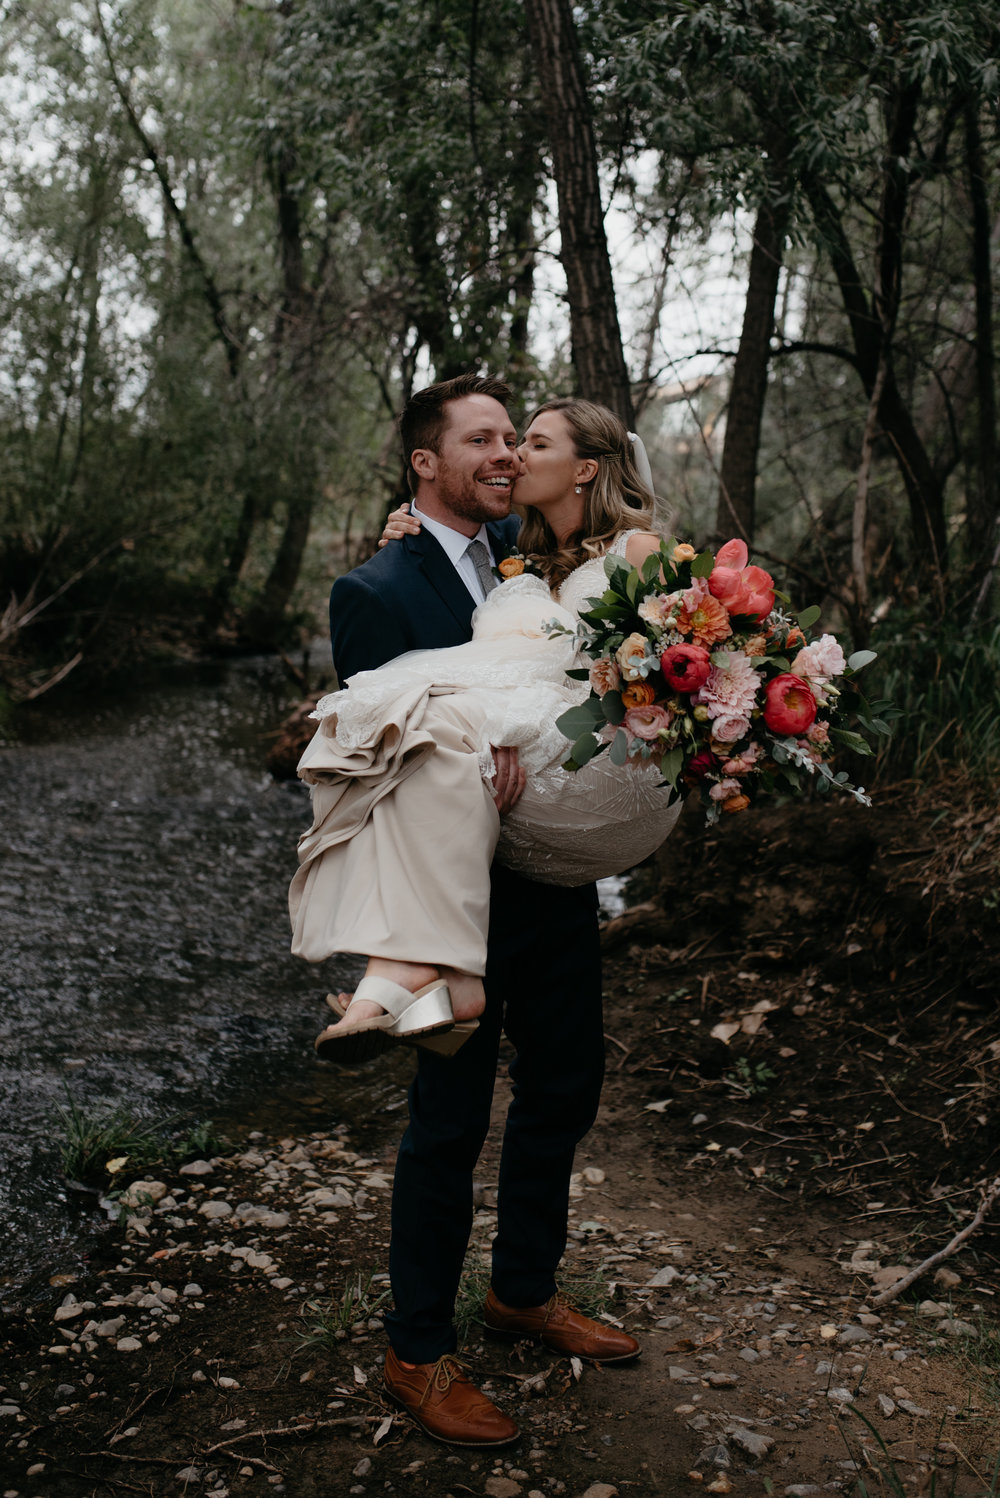 Boulder wedding and elopement photographer. Colorado adventure wedding photographer.